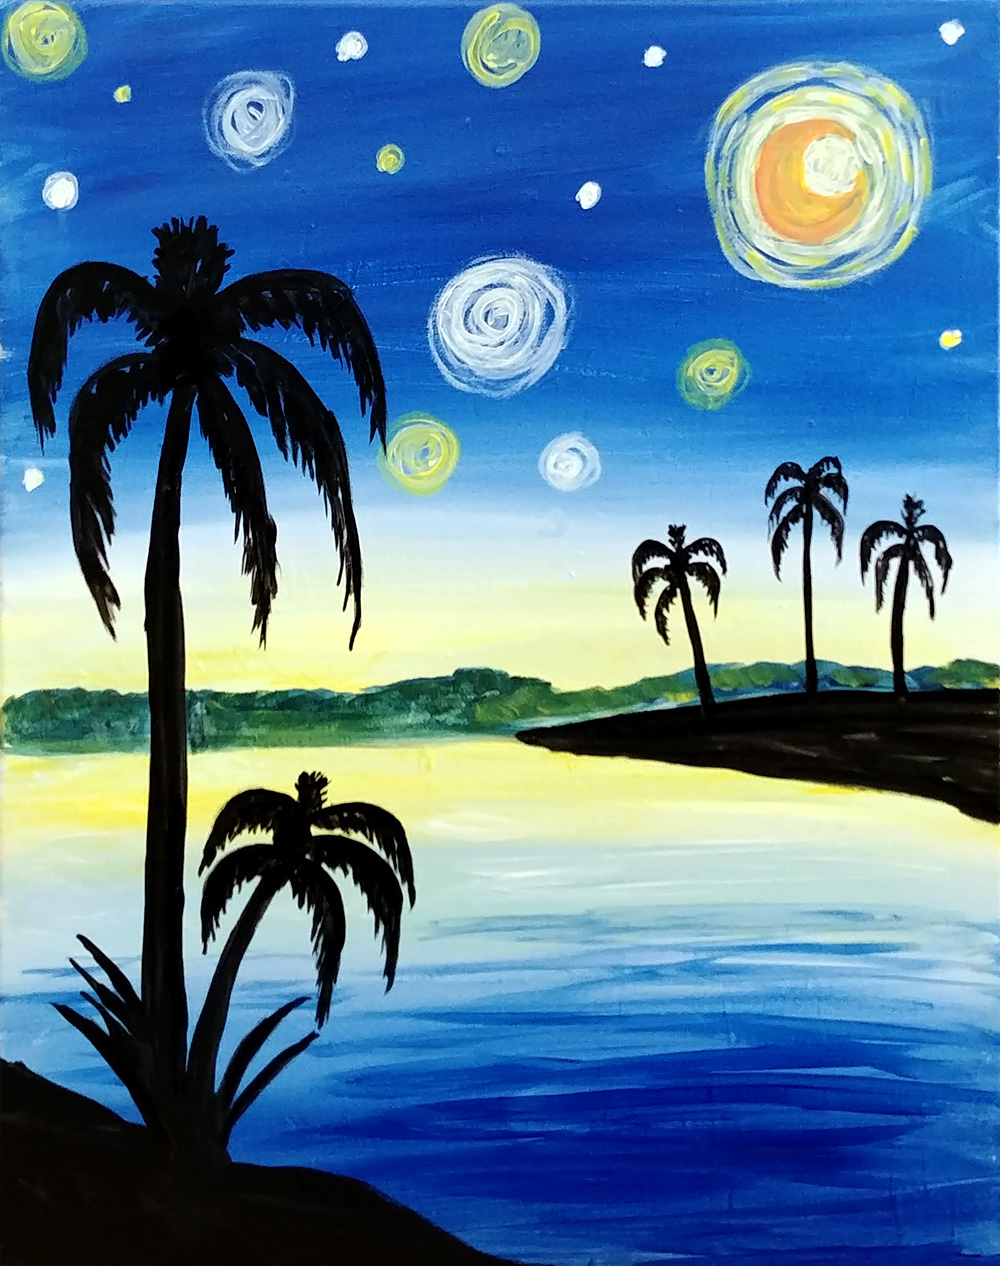 A Tropical Starry Nite experience project by Yaymaker